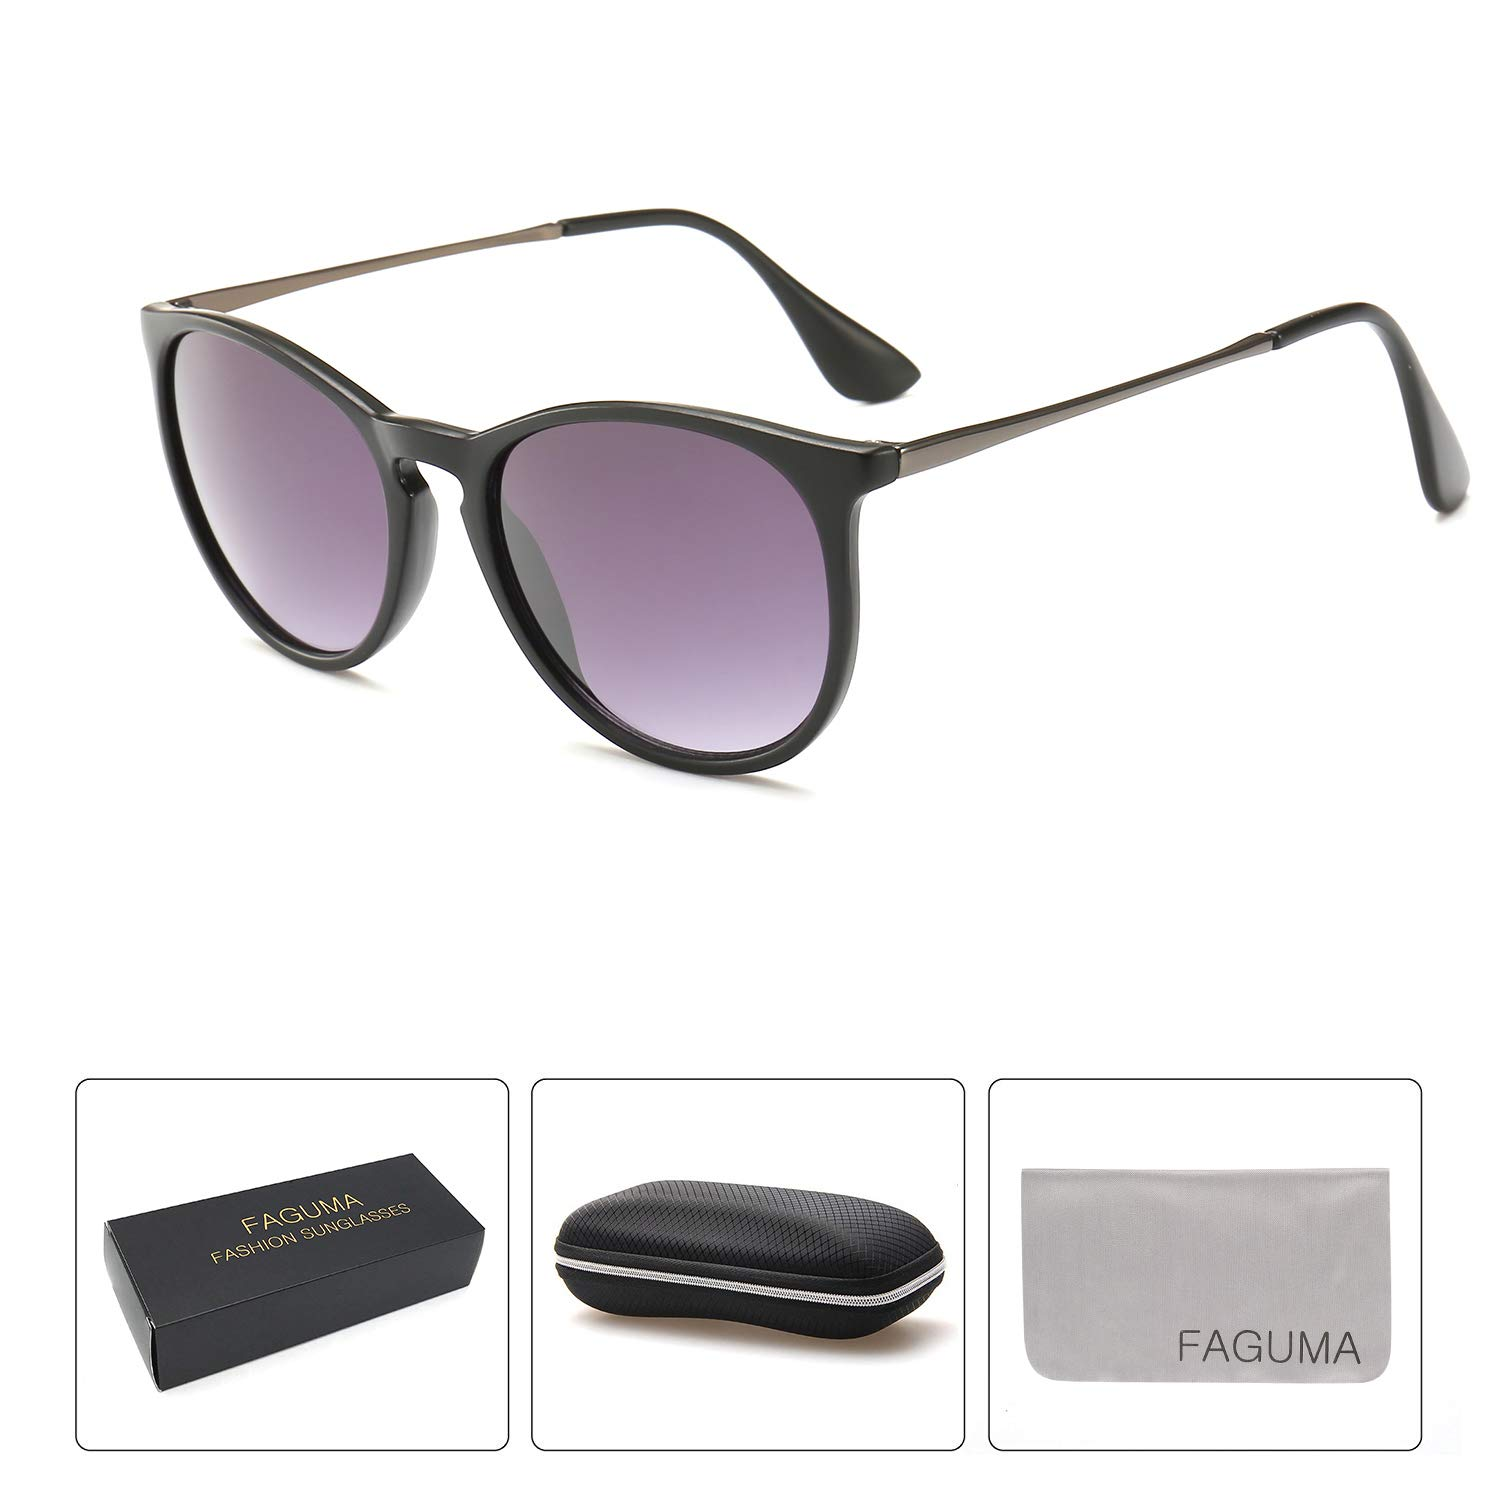 FAGUMA Vintage Round Sunglasses for Women Retro Erika Style Shades